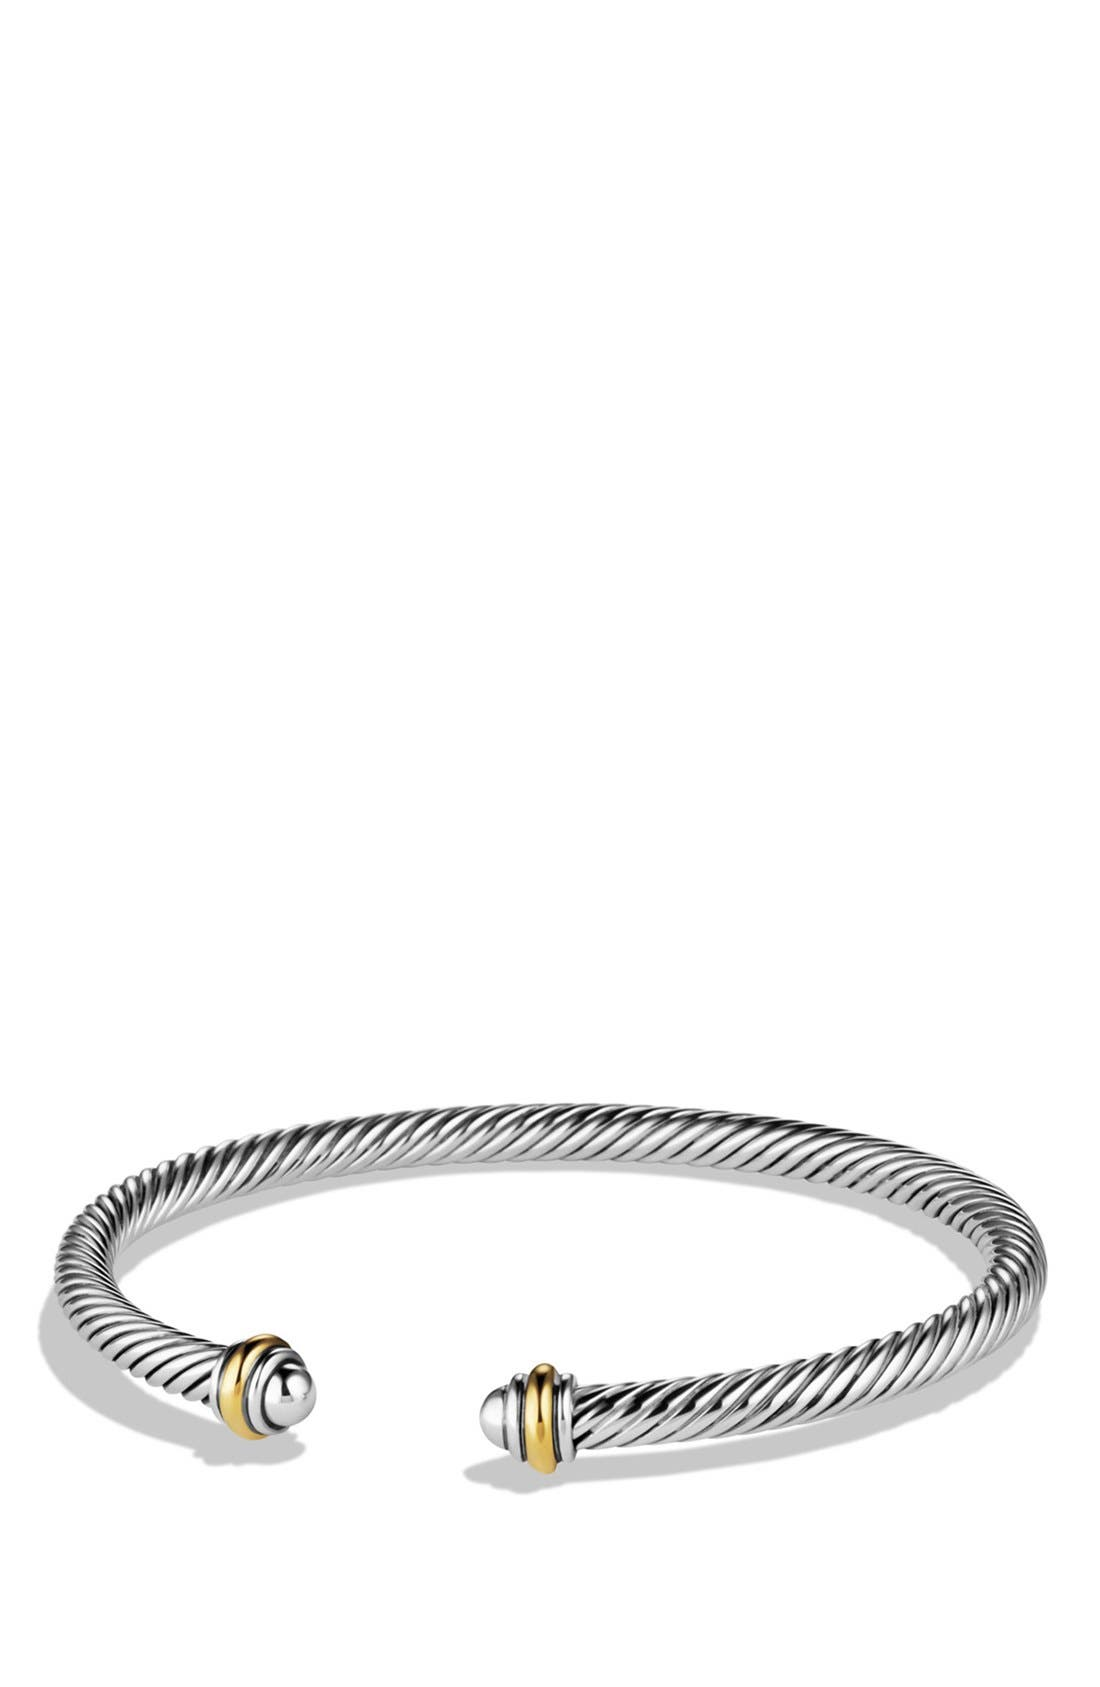 David Yurman Cable Classics Bracelet with 18K Gold, 4mm